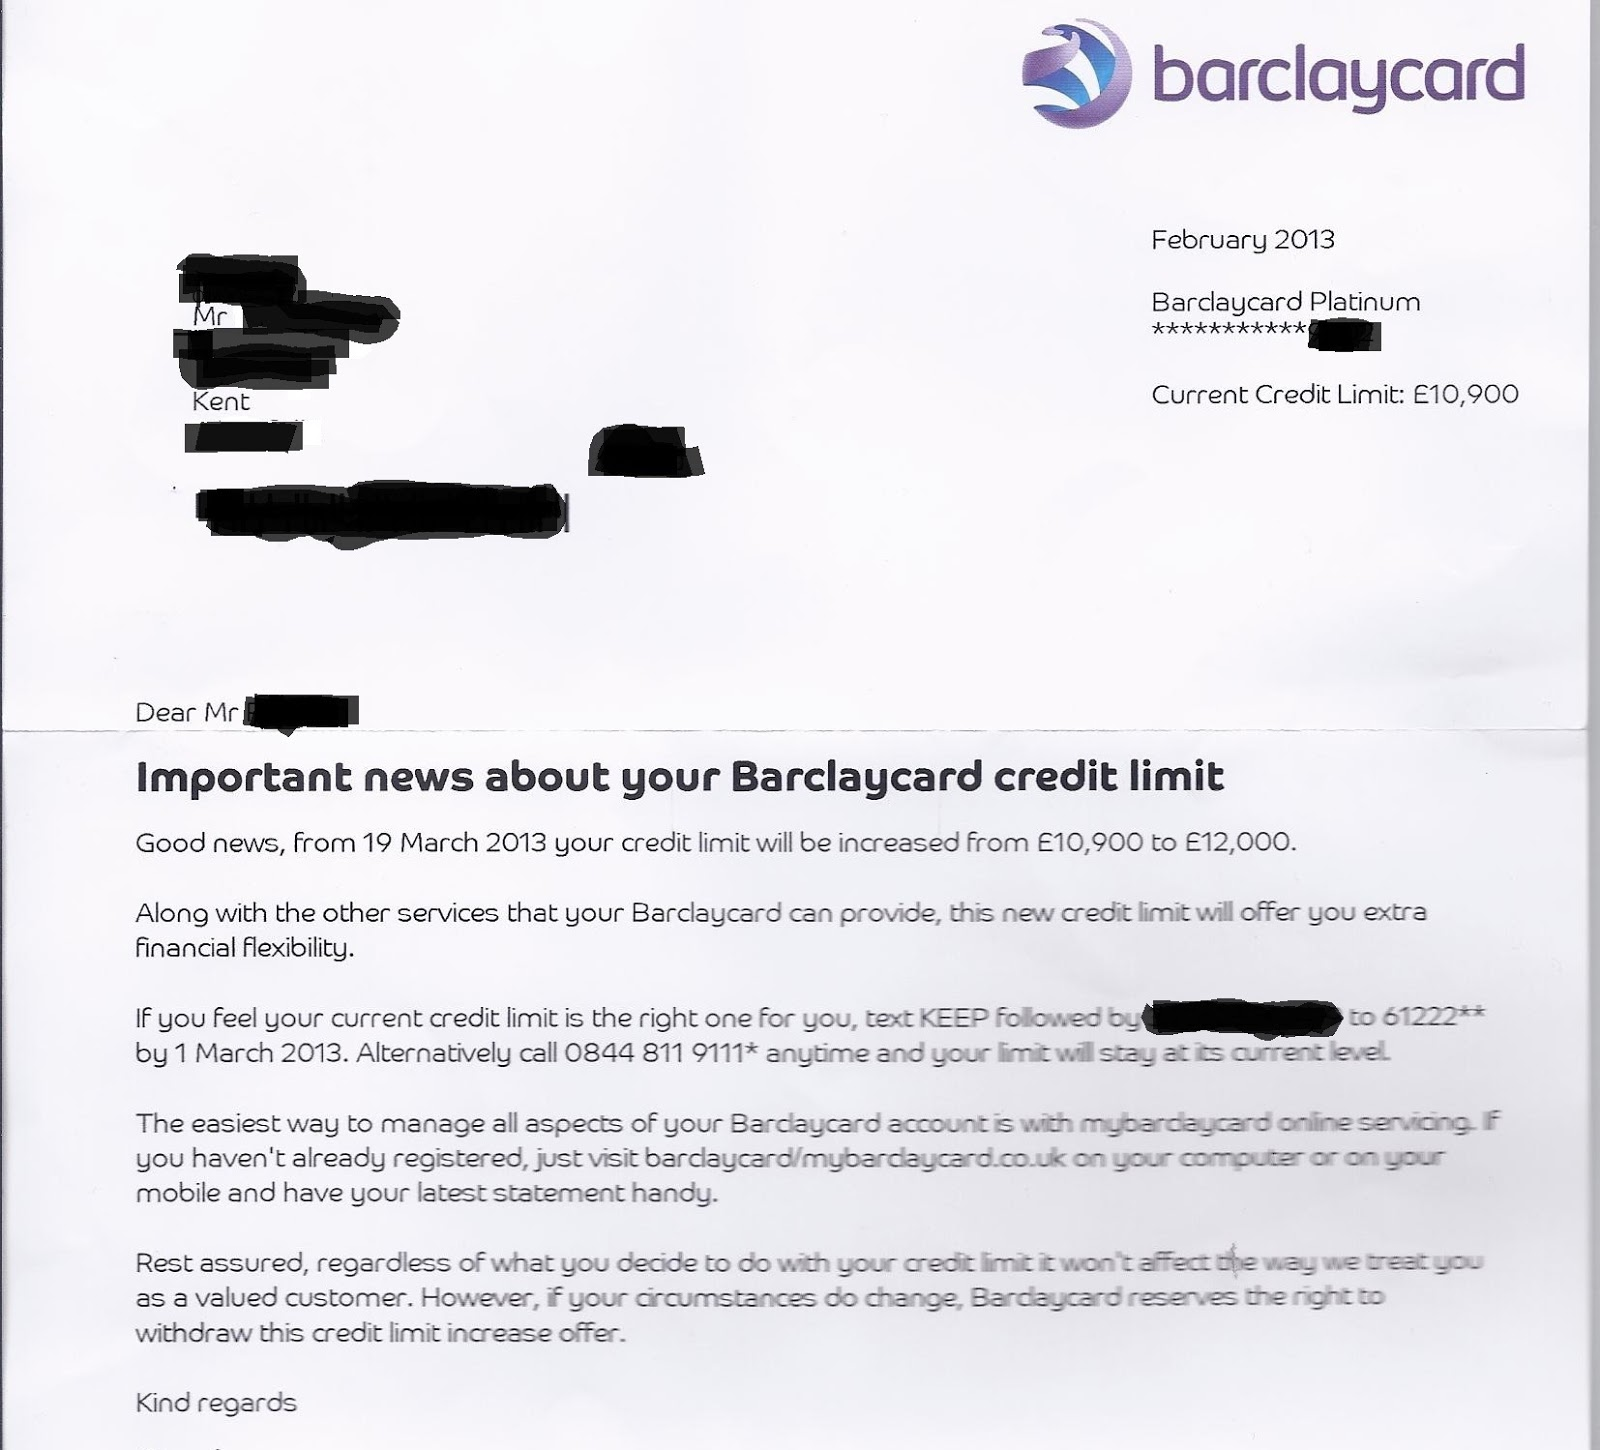 requesting credit limit increase